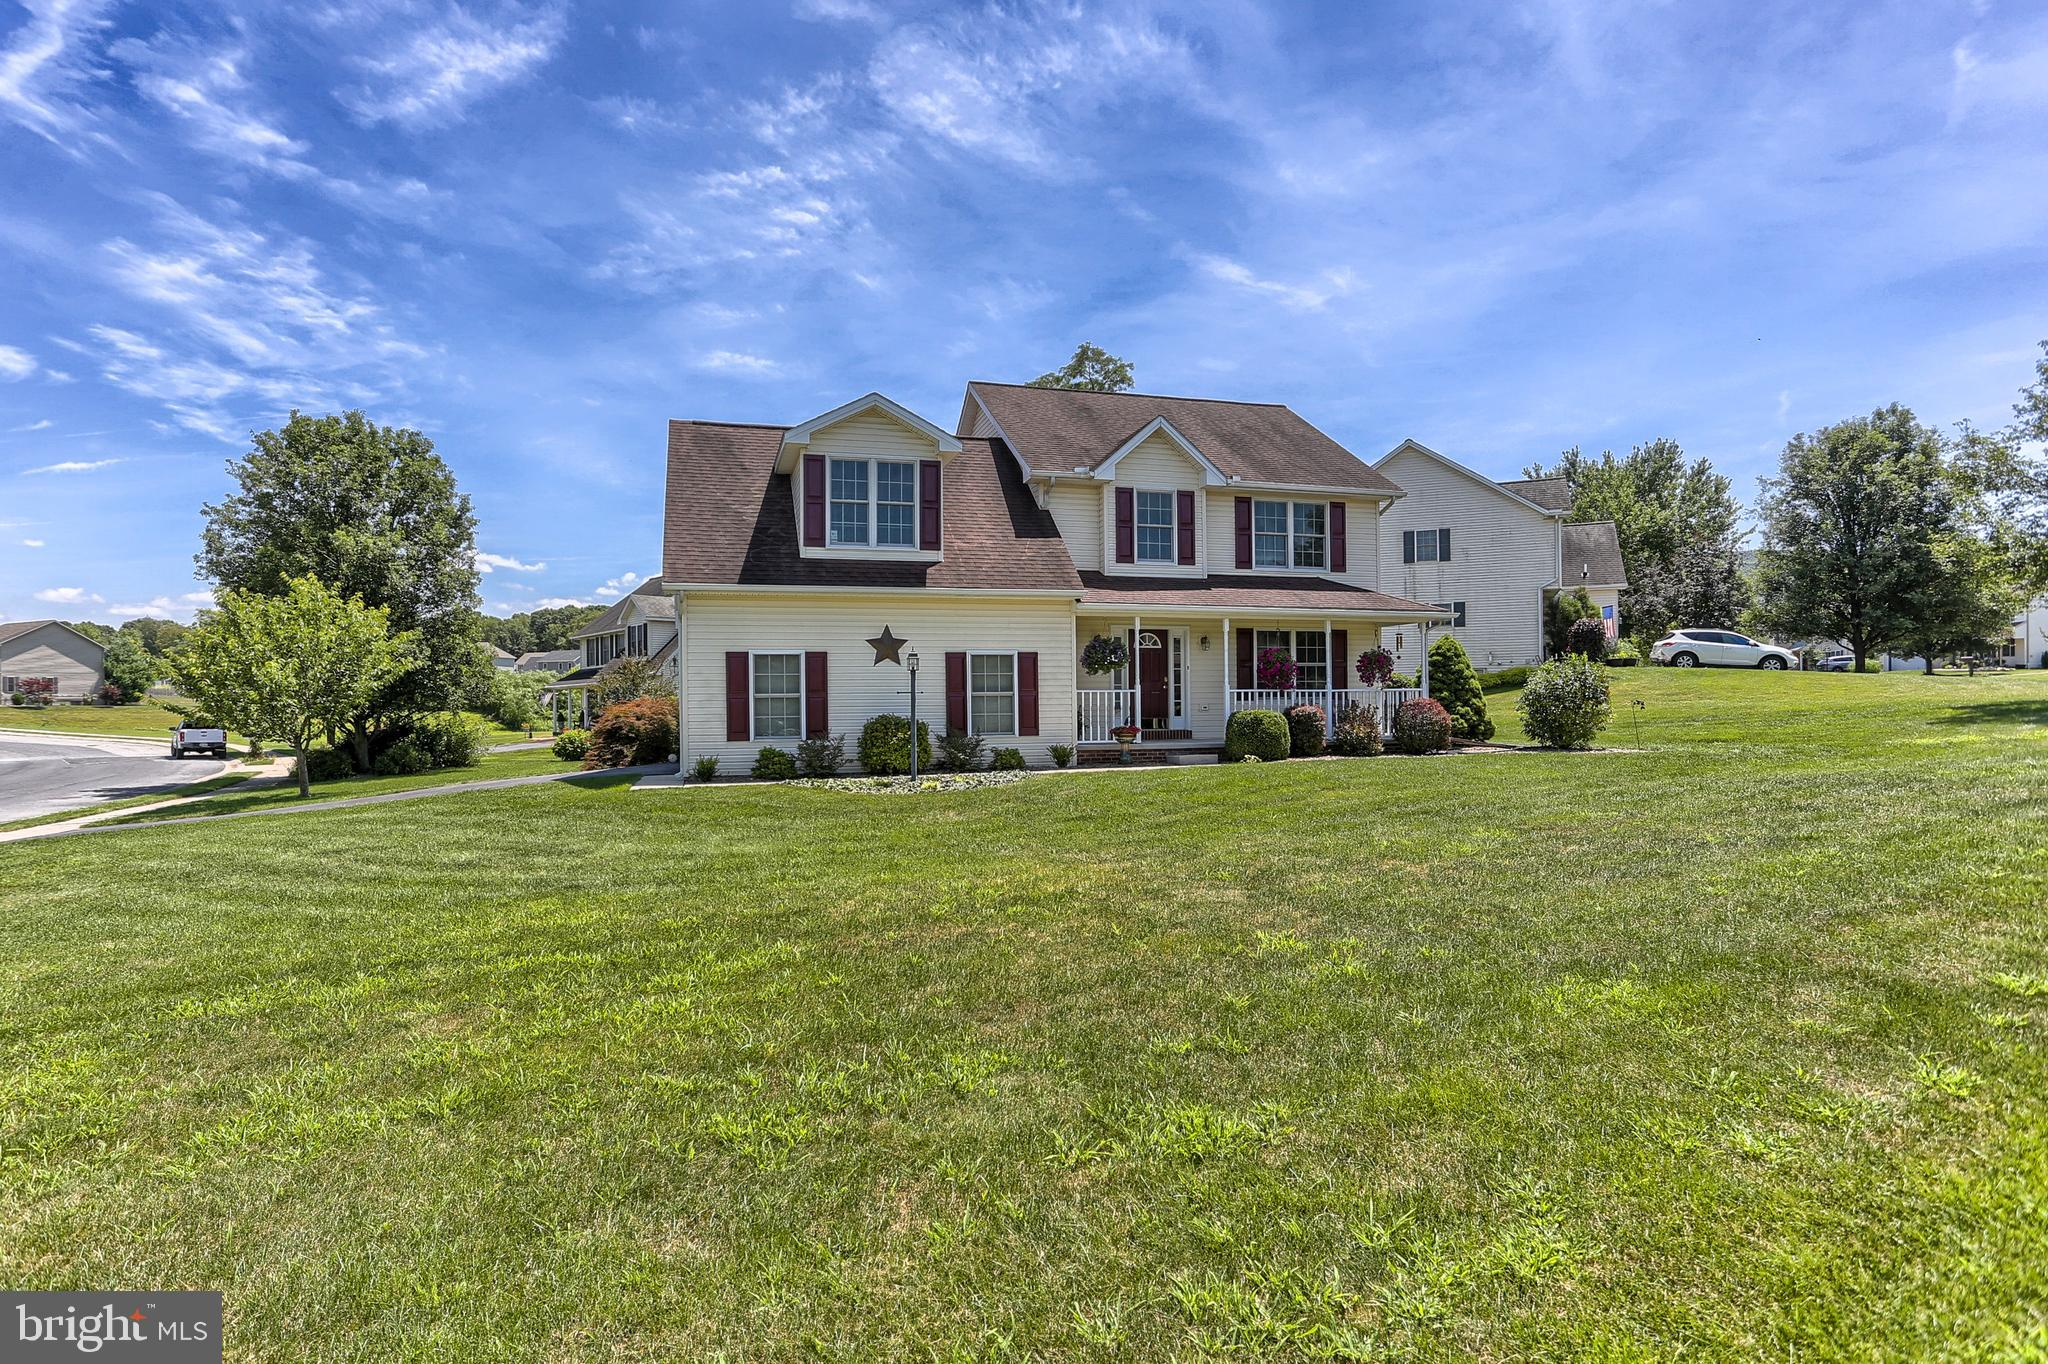 114 WOODVIEW DRIVE, MOUNT HOLLY SPRINGS, PA 17065